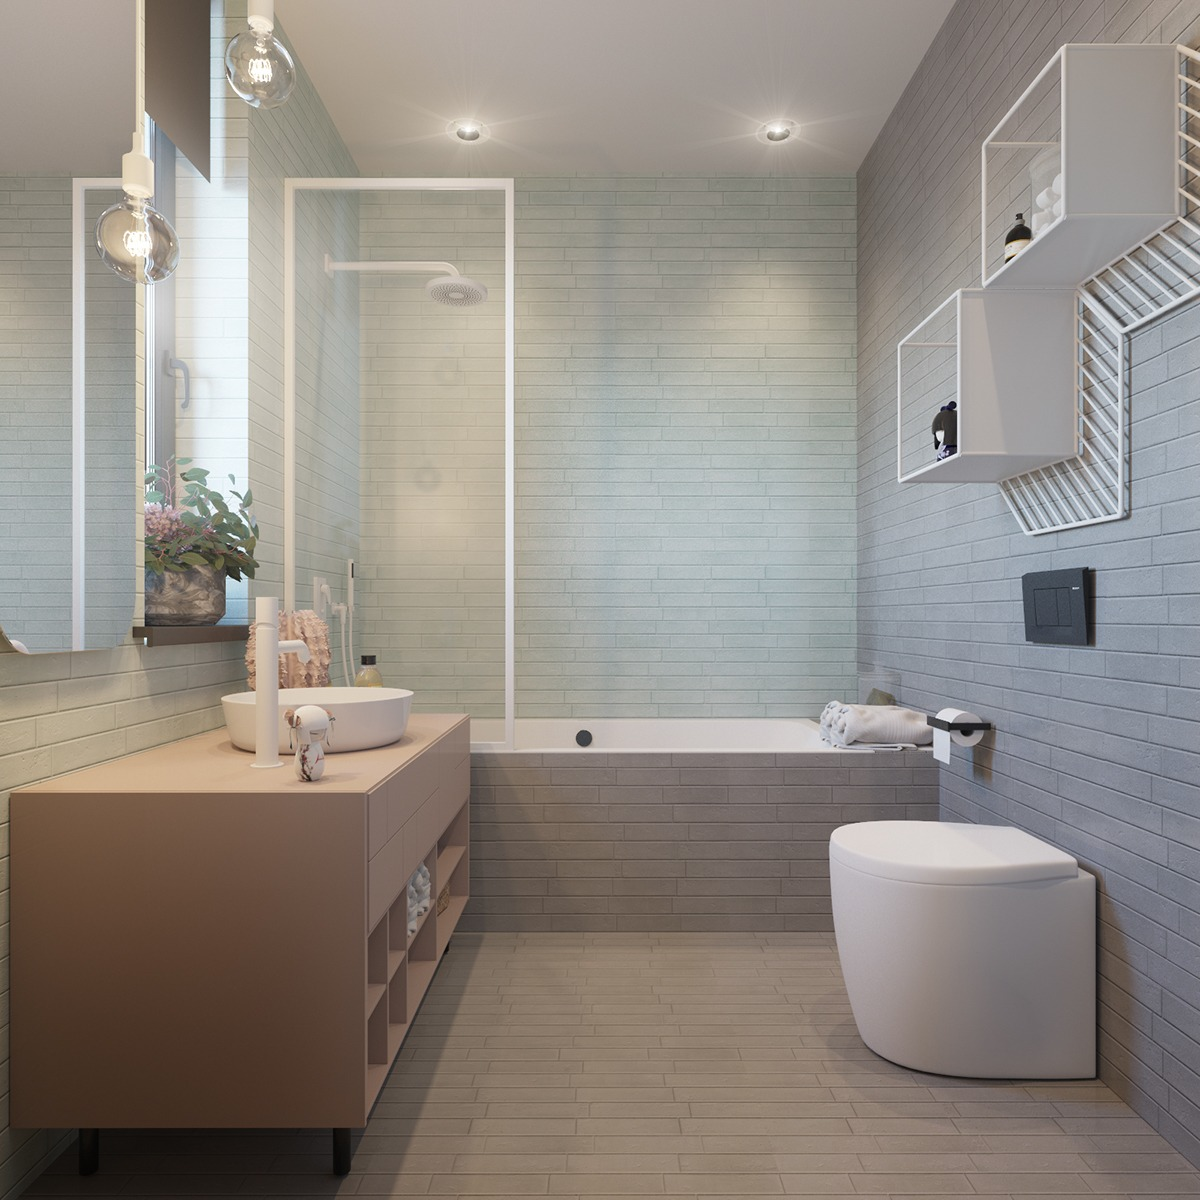 Nursery bathroom design